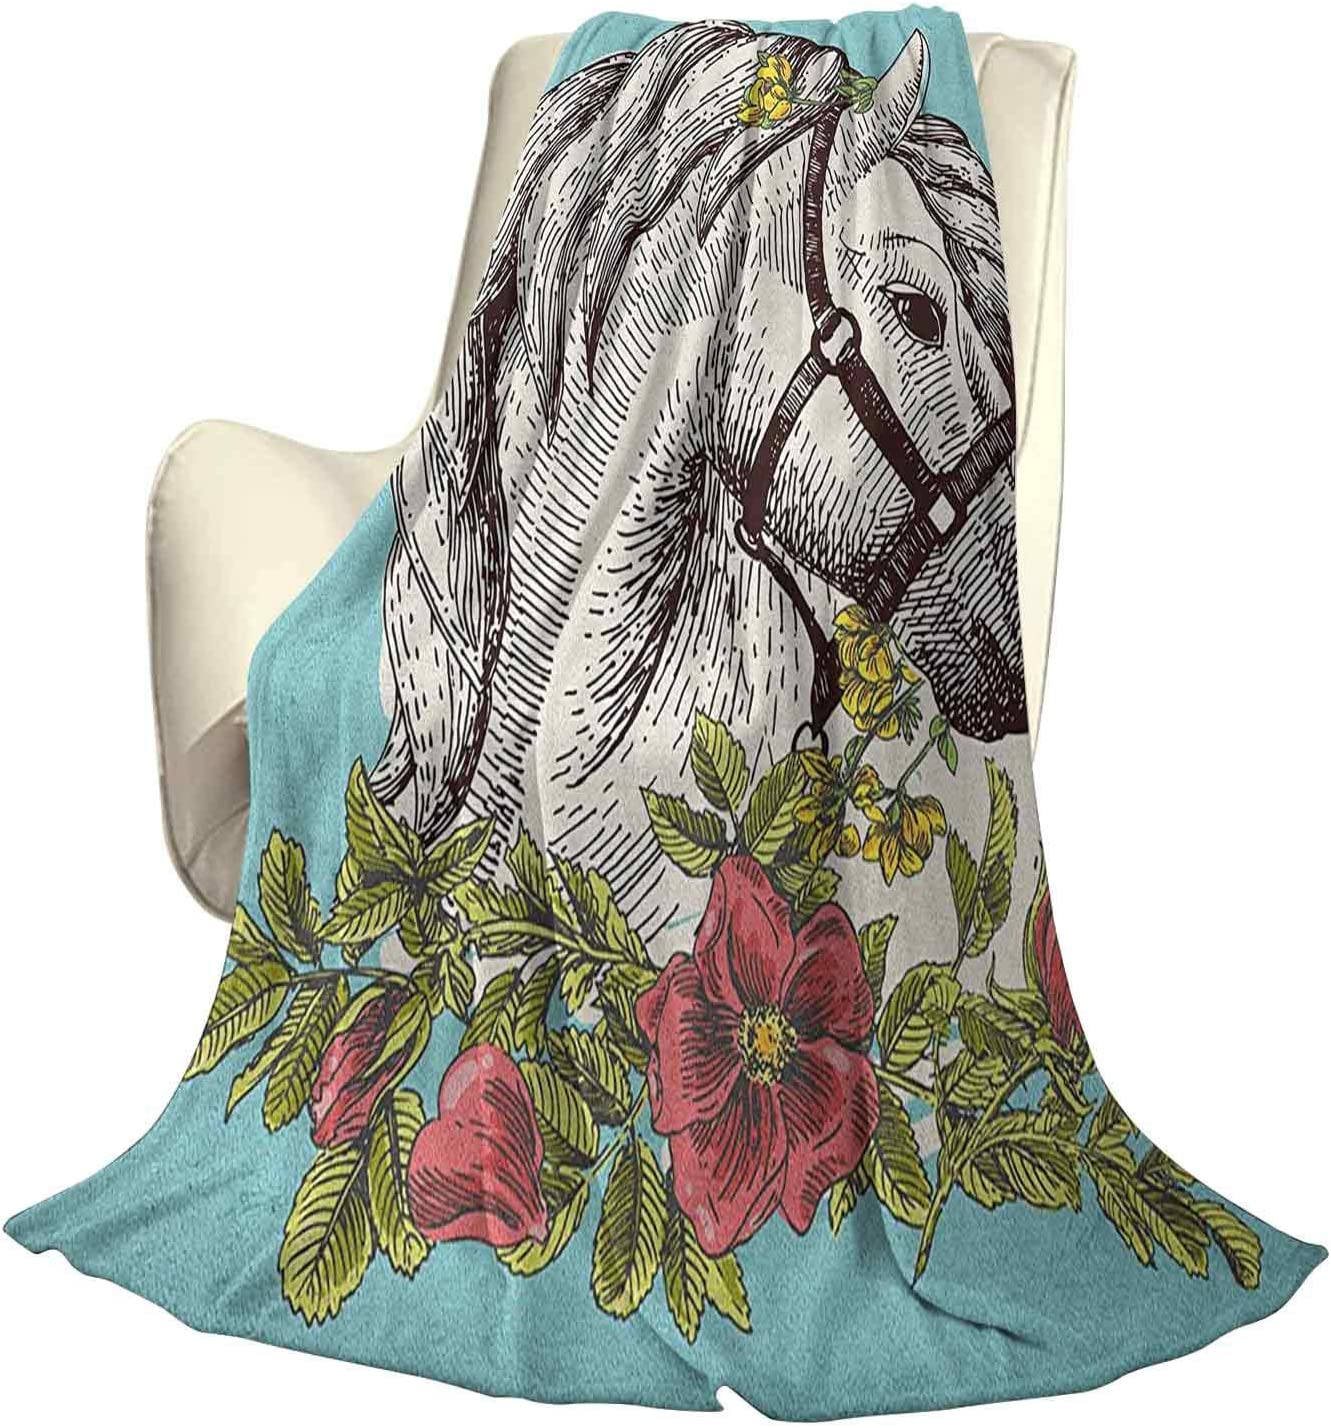 Floral Super Soft Warm Decorative Blanket Boho Style Horse Opium Blossoms Poppy Wreath Equestrian Illustration Beautiful Home Decor W60 x L50 Inch Turquoise Green